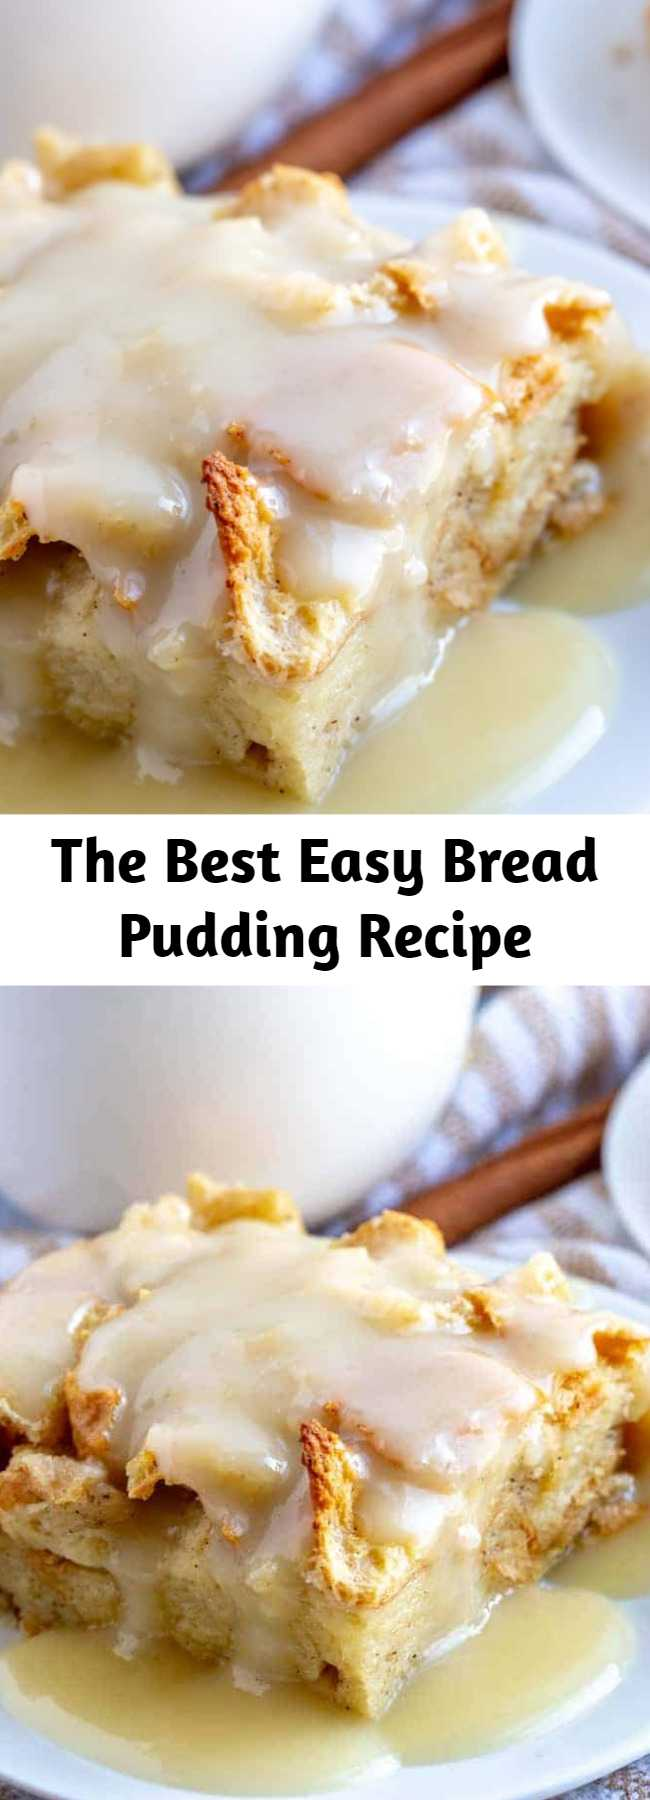 The Best Easy Bread Pudding Recipe - When it comes to easy recipes this Bread Pudding couldn't get any simpler. Filled with cinnamon and nutmeg this makes the perfect breakfast or dessert recipe.